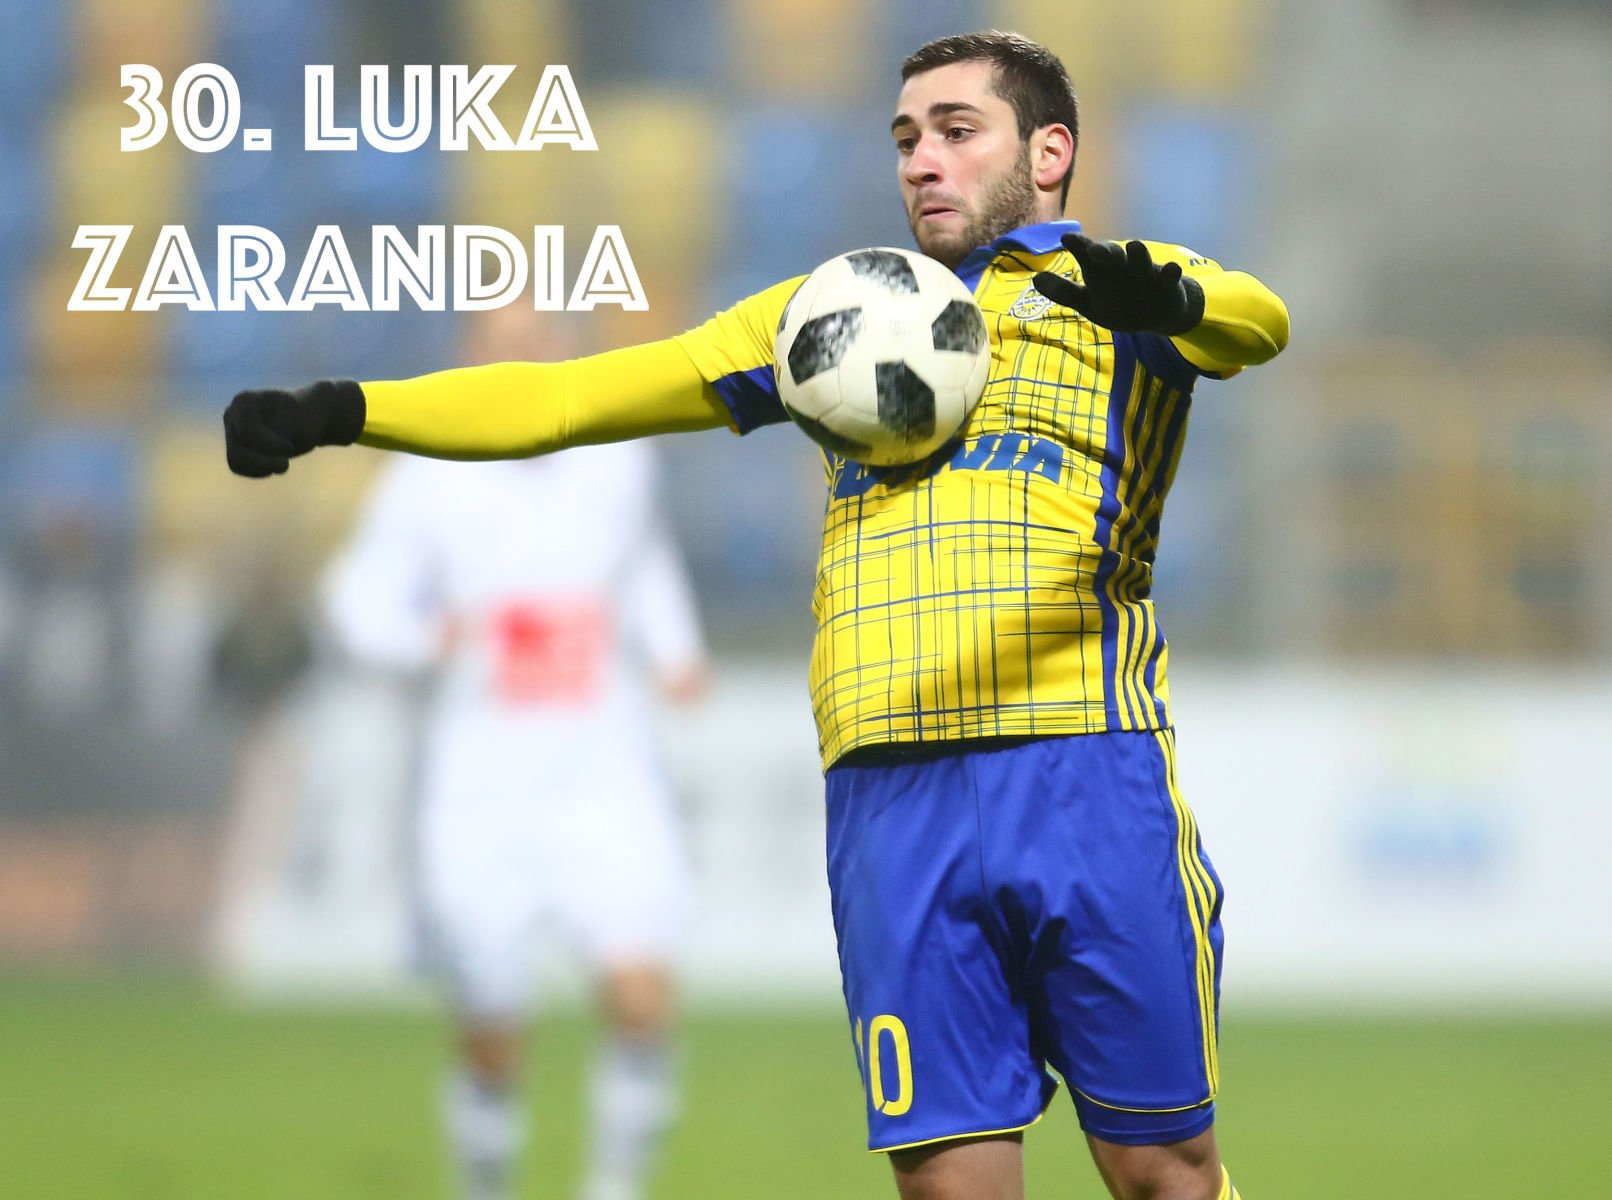 2018.12.21 Gdynia Pilka nozna Lotto Ekstraklasa sezon 2018/2019 Arka Gdynia - Wisla Plock N/z Luka Zarandia Foto Piotr Matusewicz / PressFocus/NEWSPIX.PL 2018.12.21 Gdynia Football Polish Lotto Ekstraklasa season 2018/2019 Arka Gdynia - Wisla Plock Luka Zarandia Credit: Piotr Matusewicz / PressFocus --- Newspix.pl